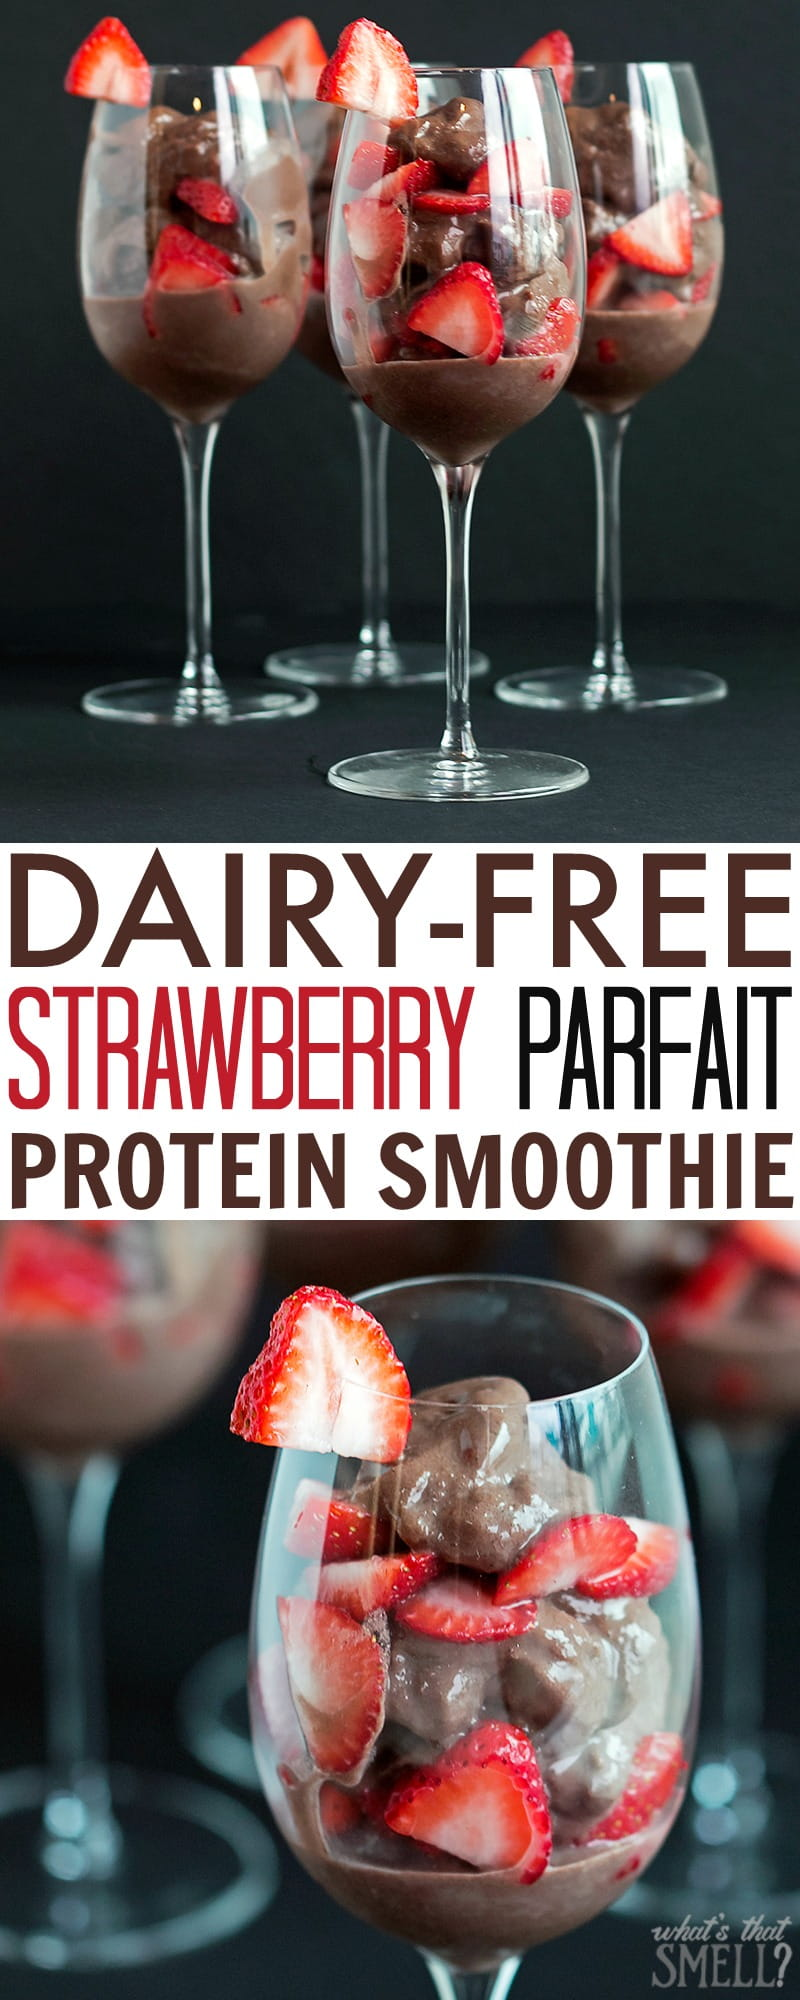 Dairy-Free Strawberry Parfait Protein Smoothie - get the clean protein your body needs to fuel you through your day! Healthy, gluten-free, soy-free, dairy-free and delicious.